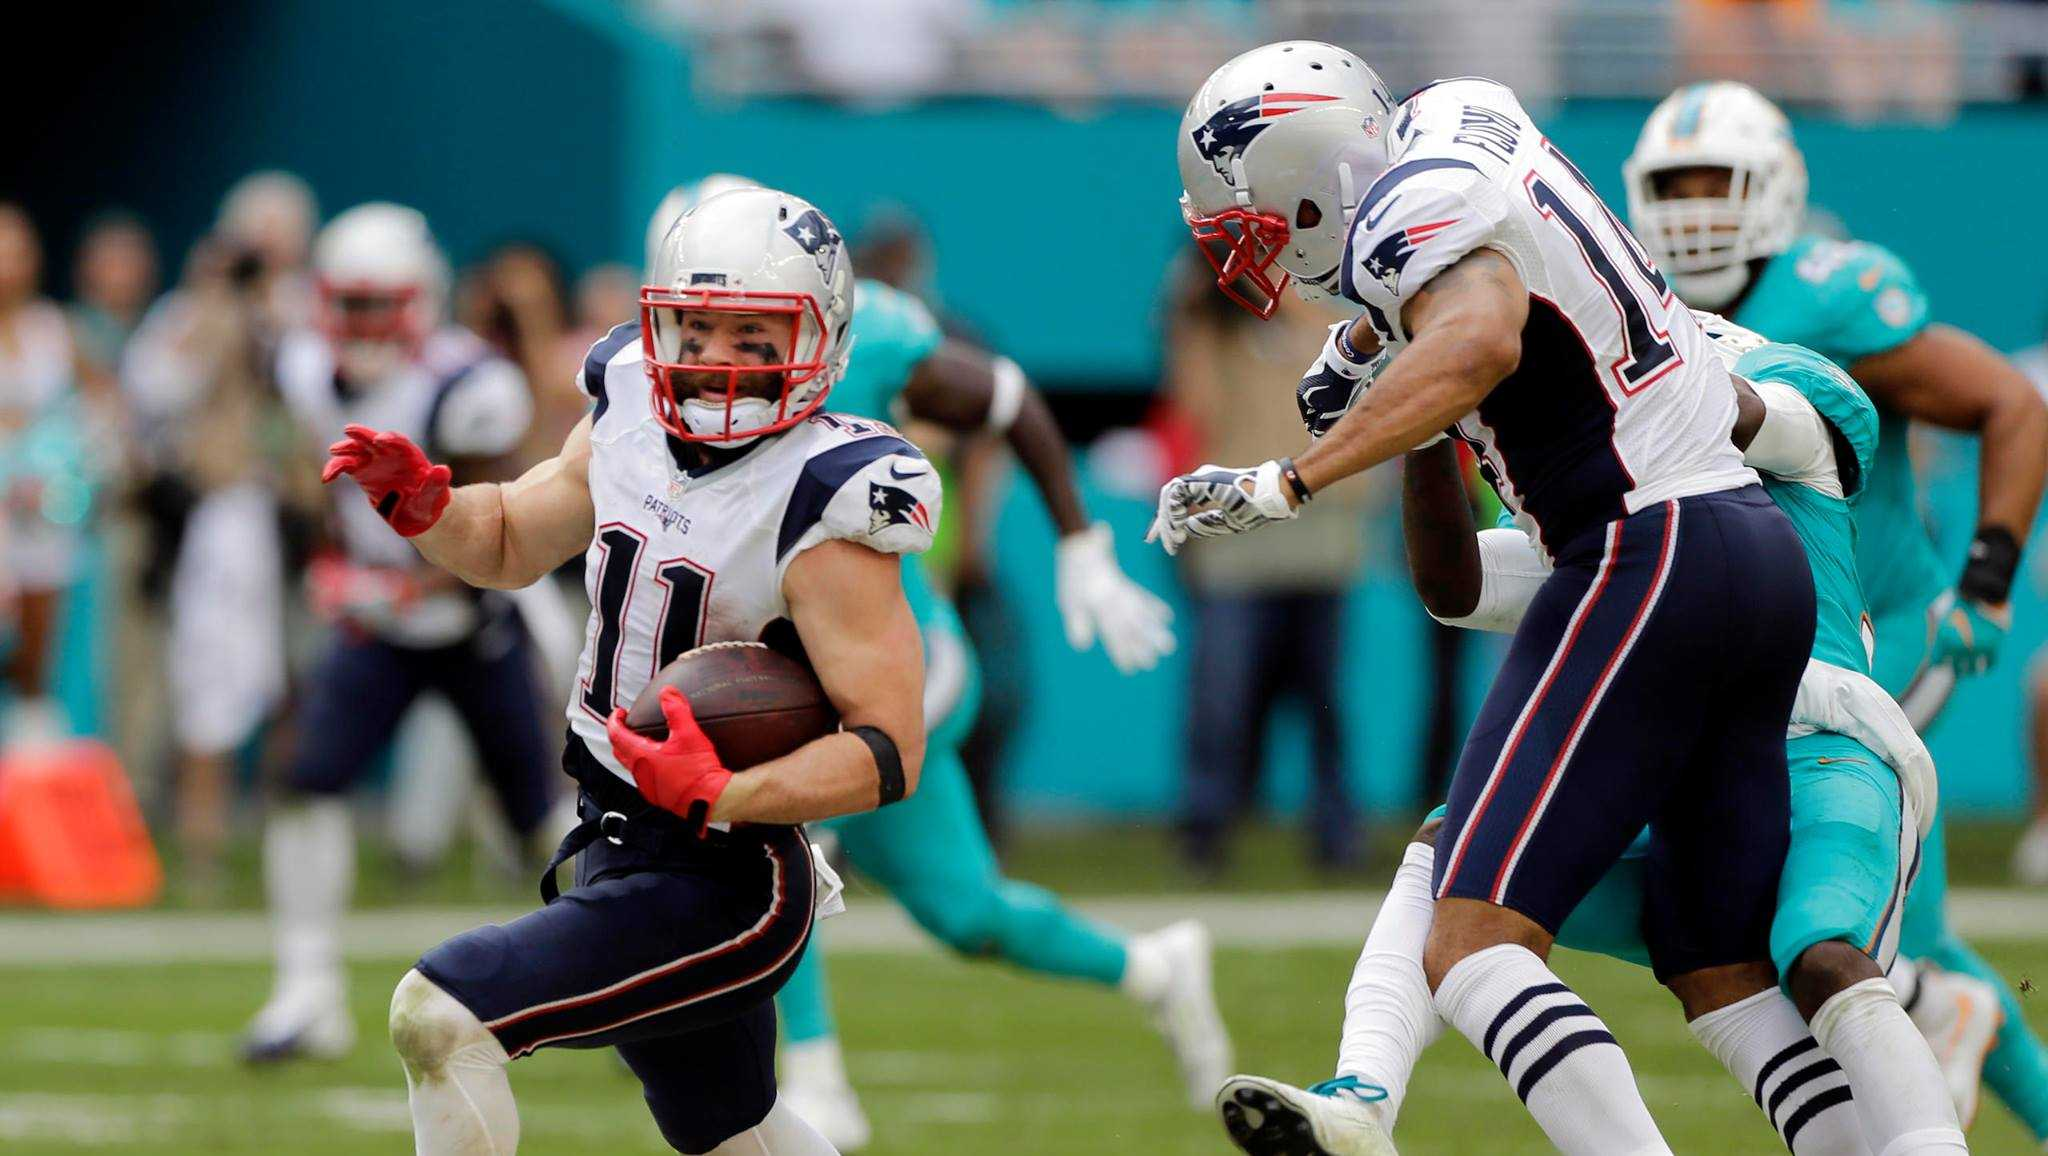 New England Patriots wide receiver Julian Edelman (11) runs for a touchdown as wide receiver Michael Floyd (14) bumps Miami Dolphins cornerback Tony Lippett (36) out of the way, during the second half of an NFL football game, Sunday, Jan. 1, 2017, in Miami Gardens, Fla.